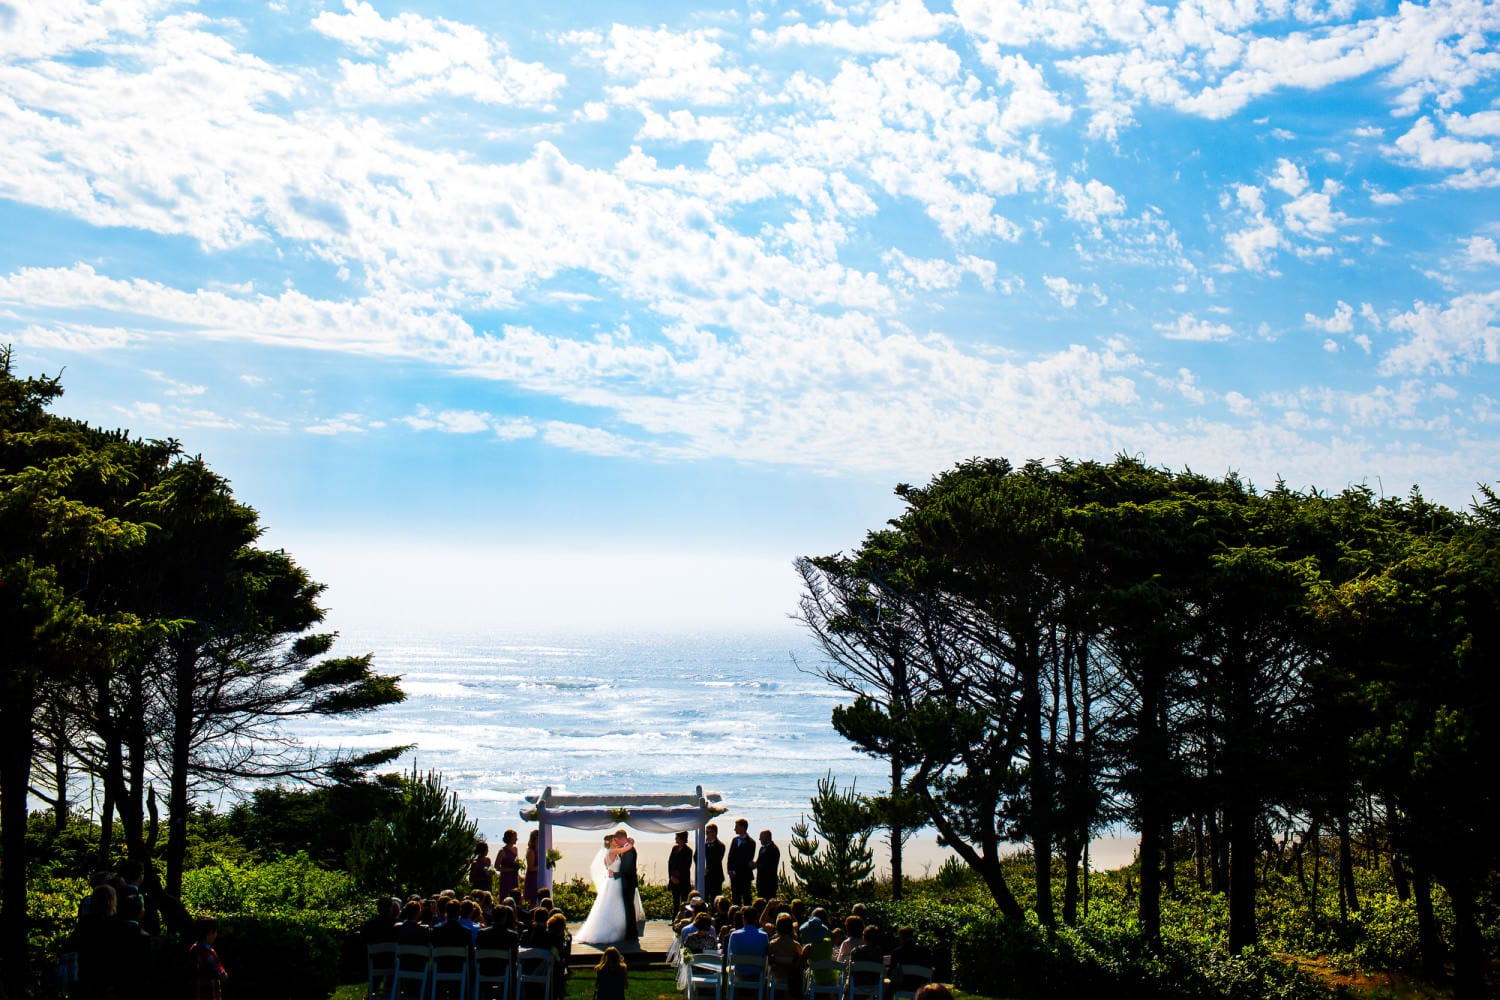 Storm Crest Cellars Wedding in South Beach Newport, Oregon by Stark Photography (33)